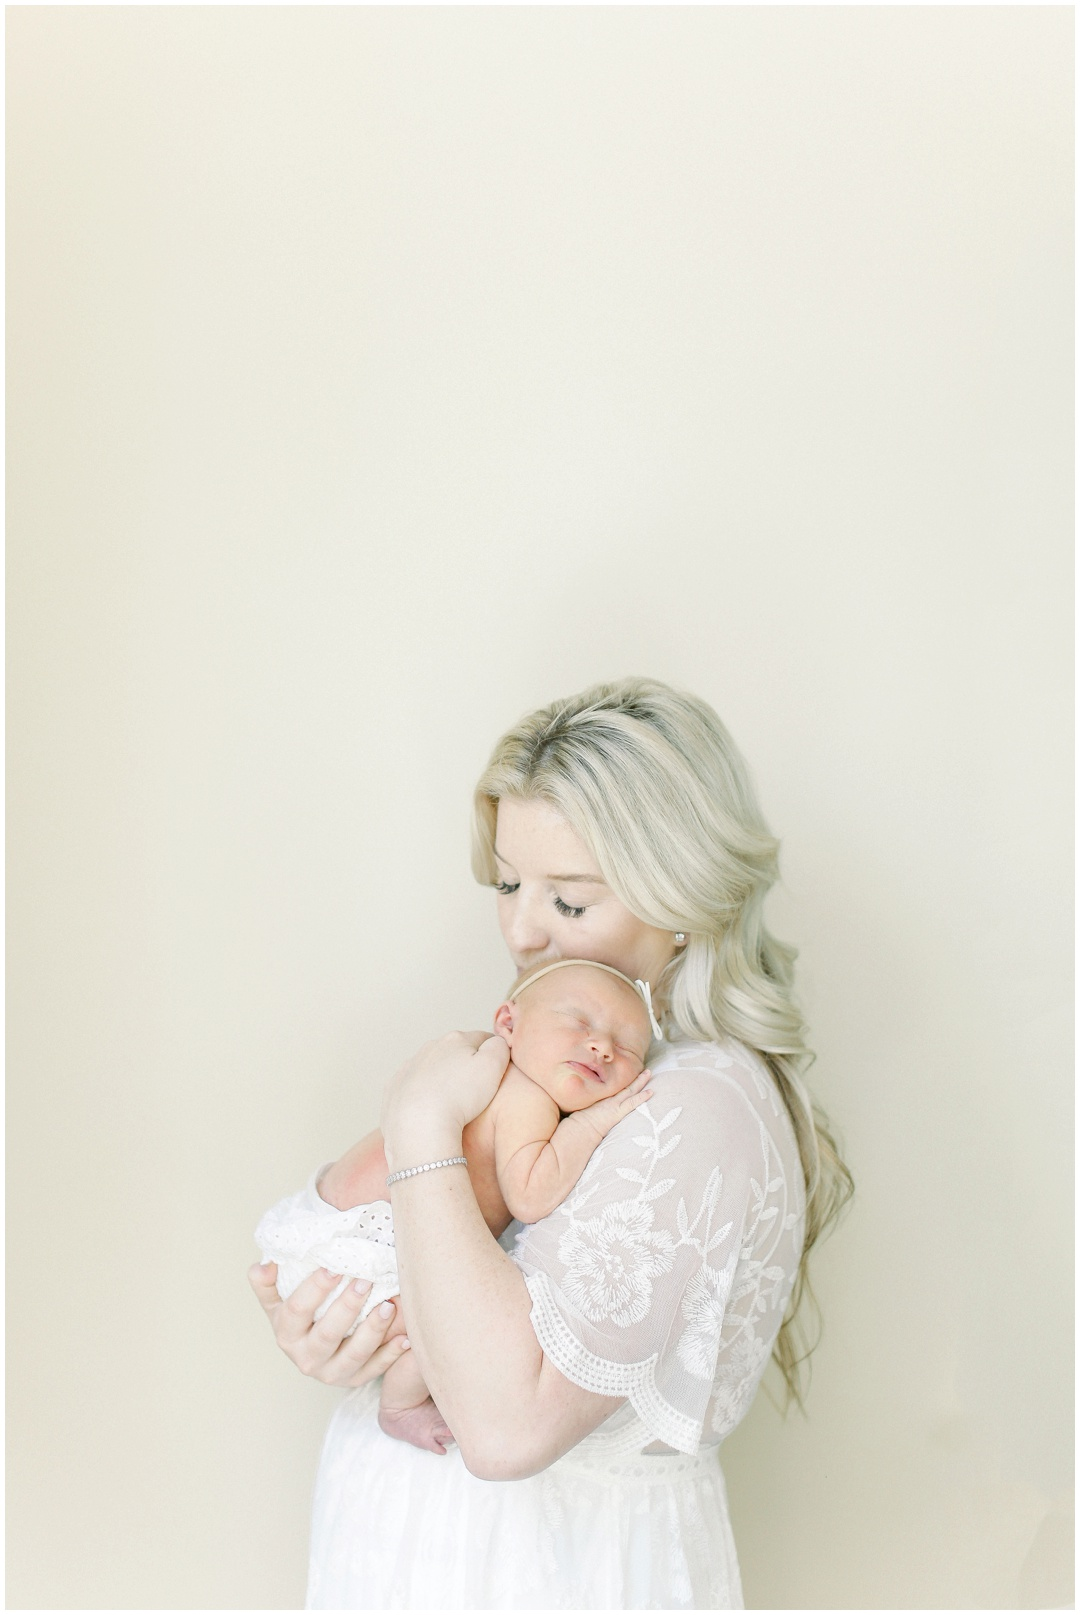 Newport_Beach_Newborn_Light_Airy_Natural_Photographer_Newport_Beach_Photographer_Orange_County_Family_Photographer_Cori_Kleckner_Photography_Newport_Beach_Photographer_newborn_kole_calhoun56_kole_calhoun_Jennifer_Calhoun_Knox_Calhoun_3786.jpg